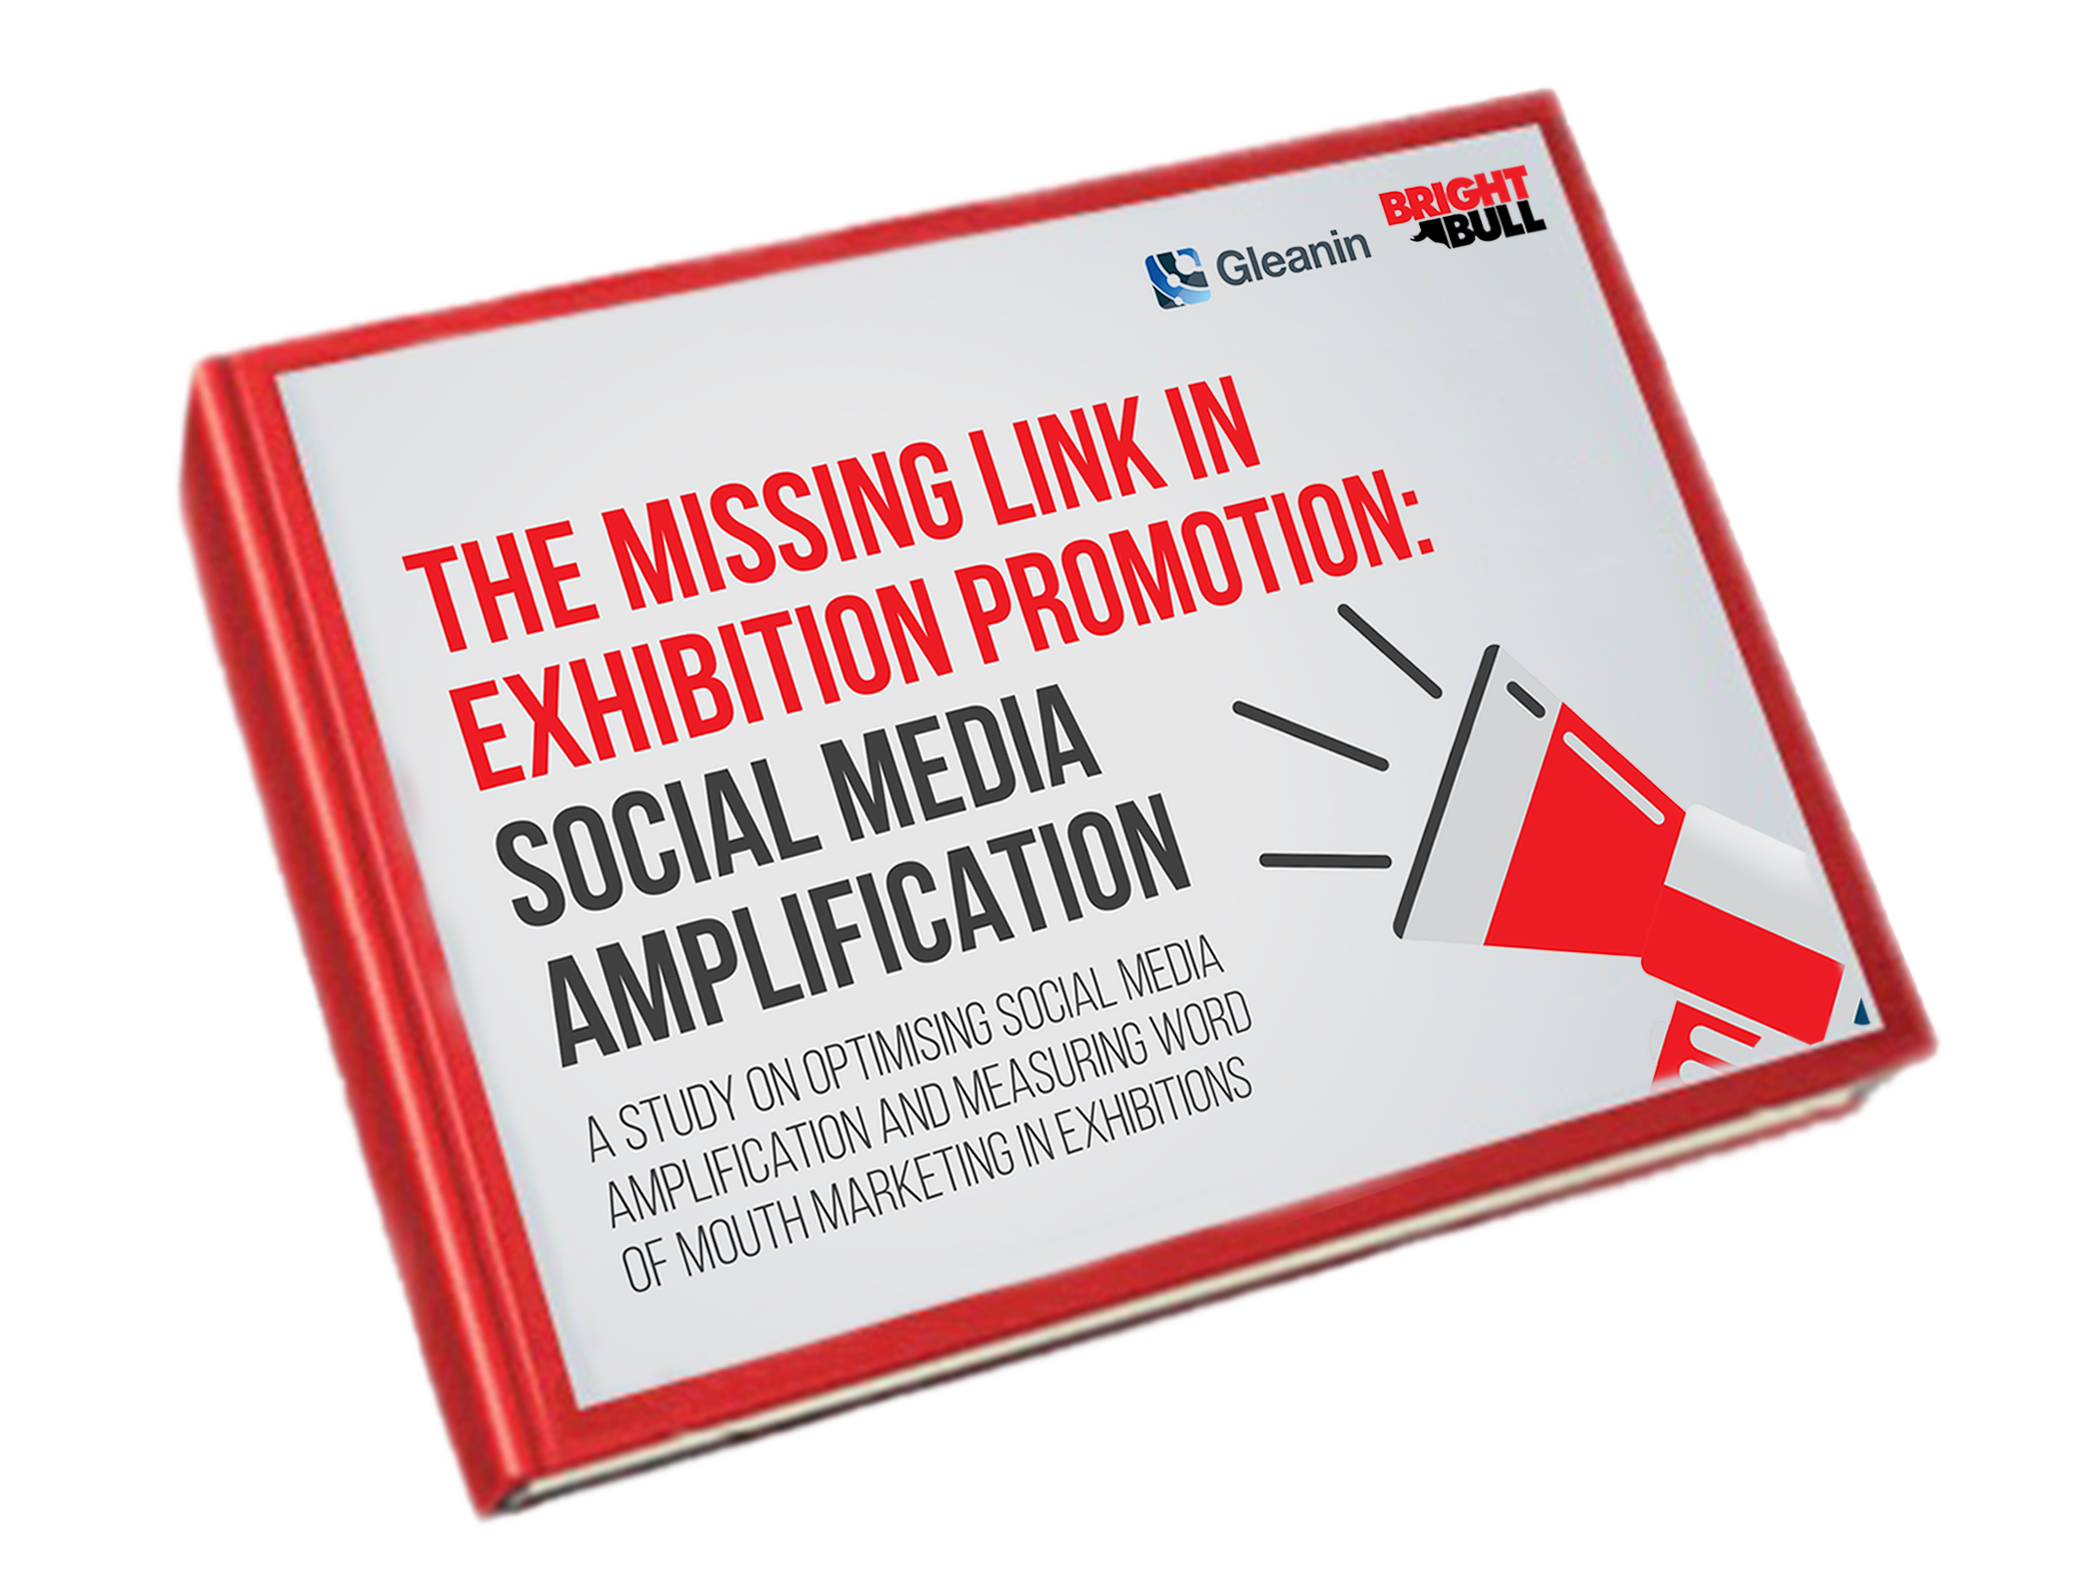 Social-Media-Amplification-in-Exhibitions-ebook.png